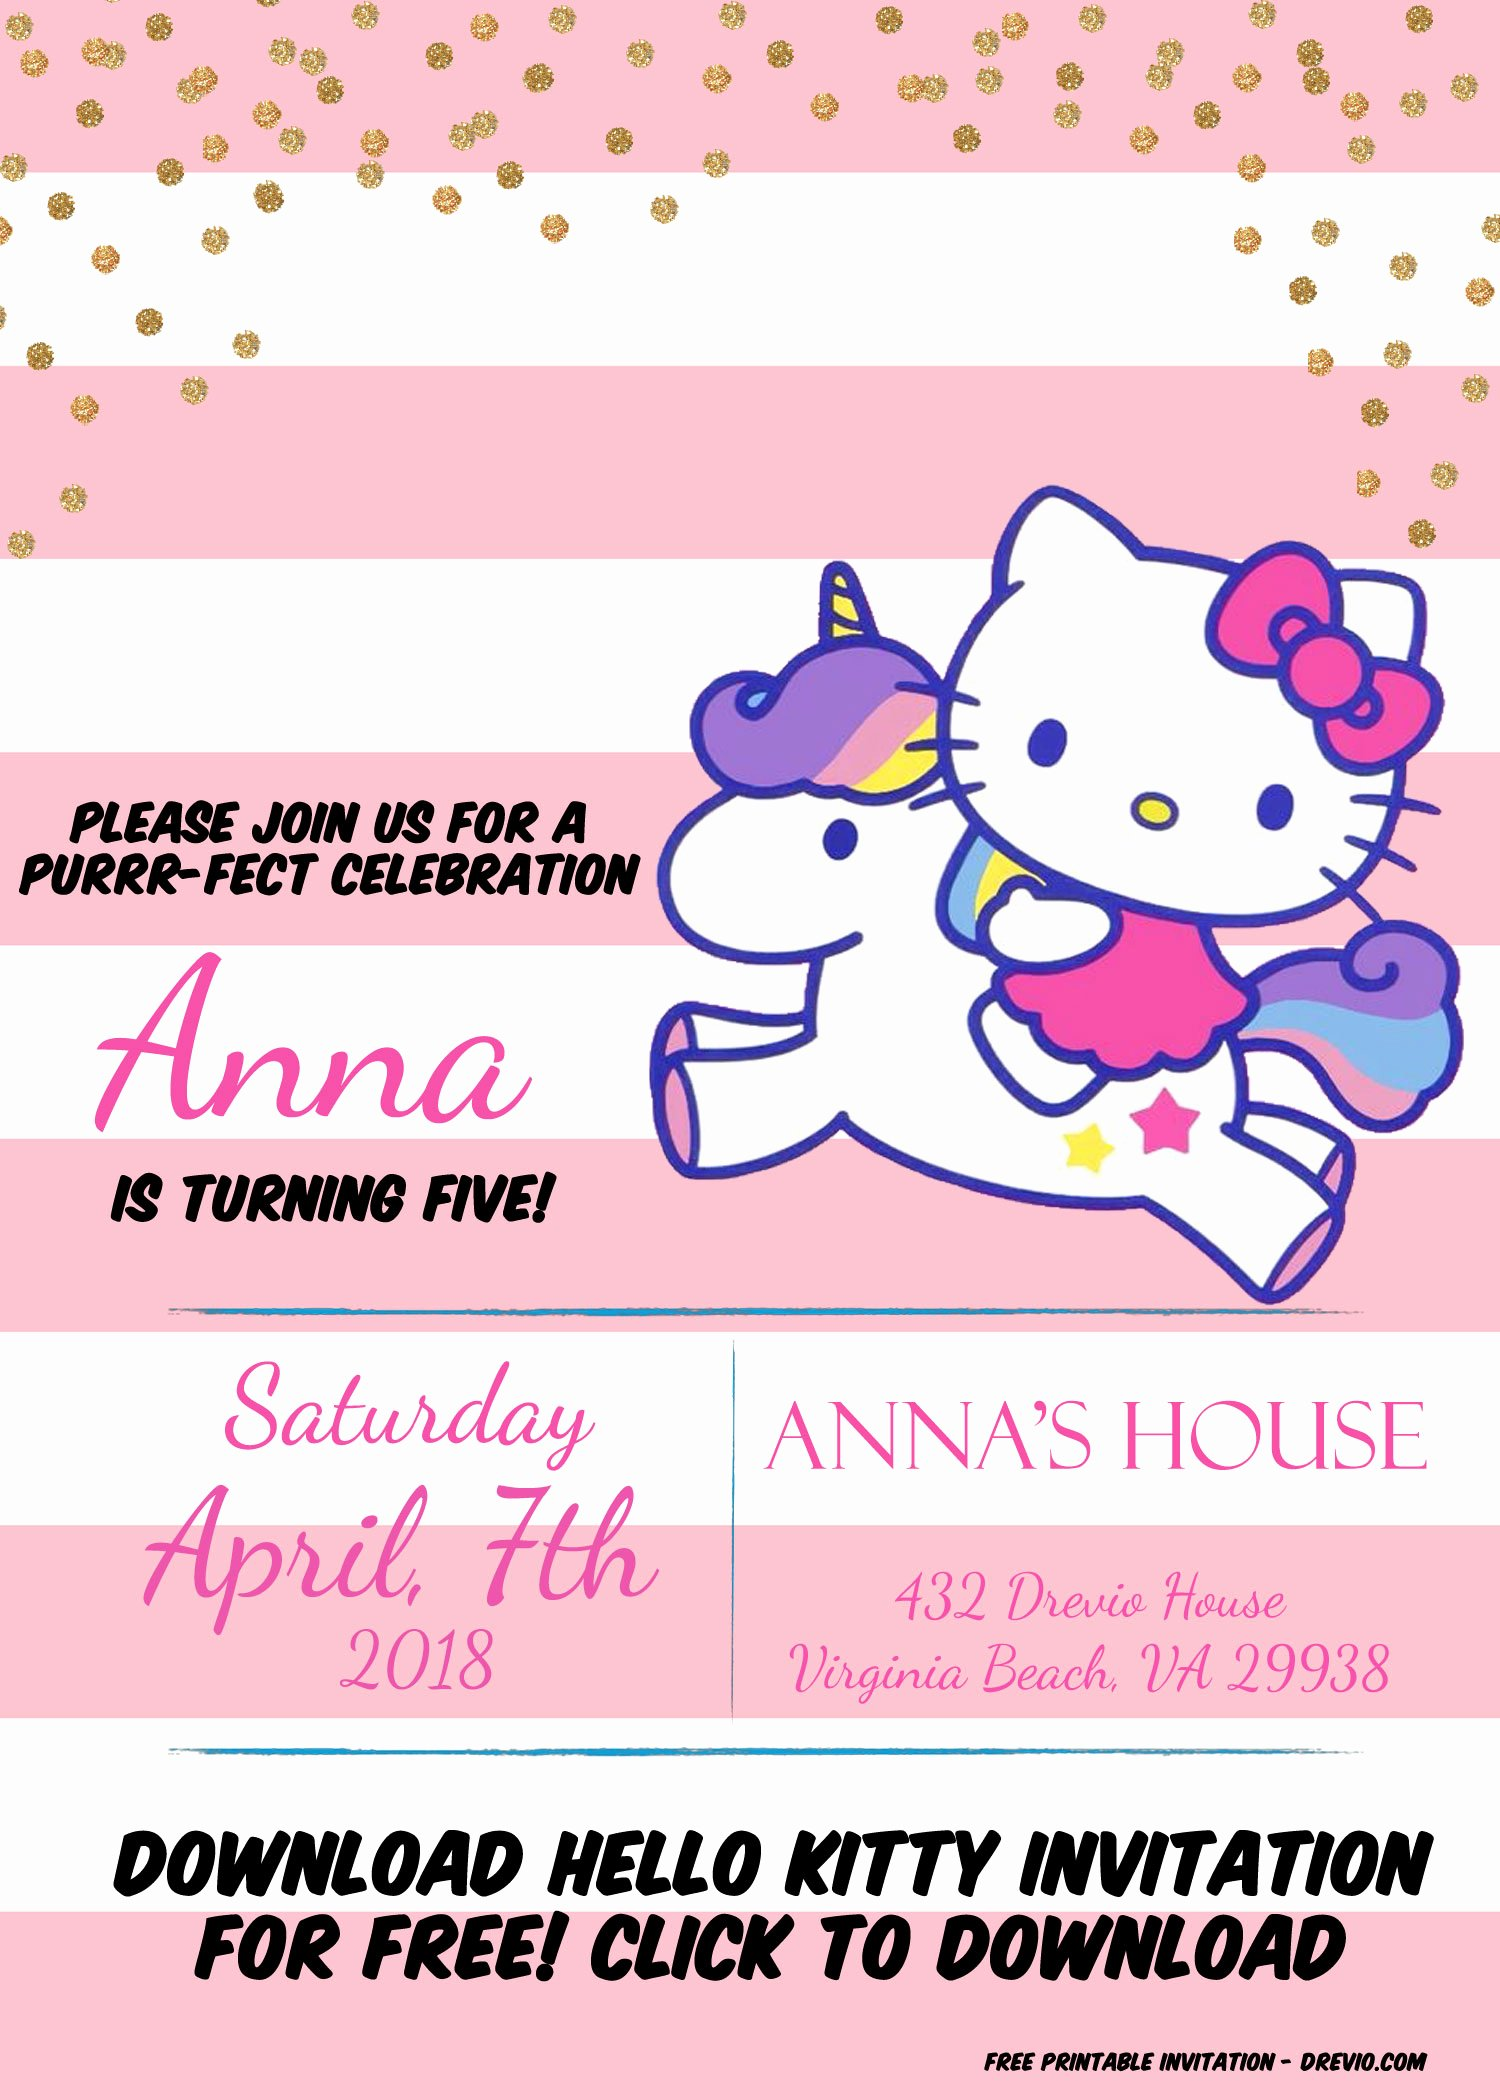 Hello Kitty Invitation Template Best Of Hello Kitty Invitation Template – Portrait Mode